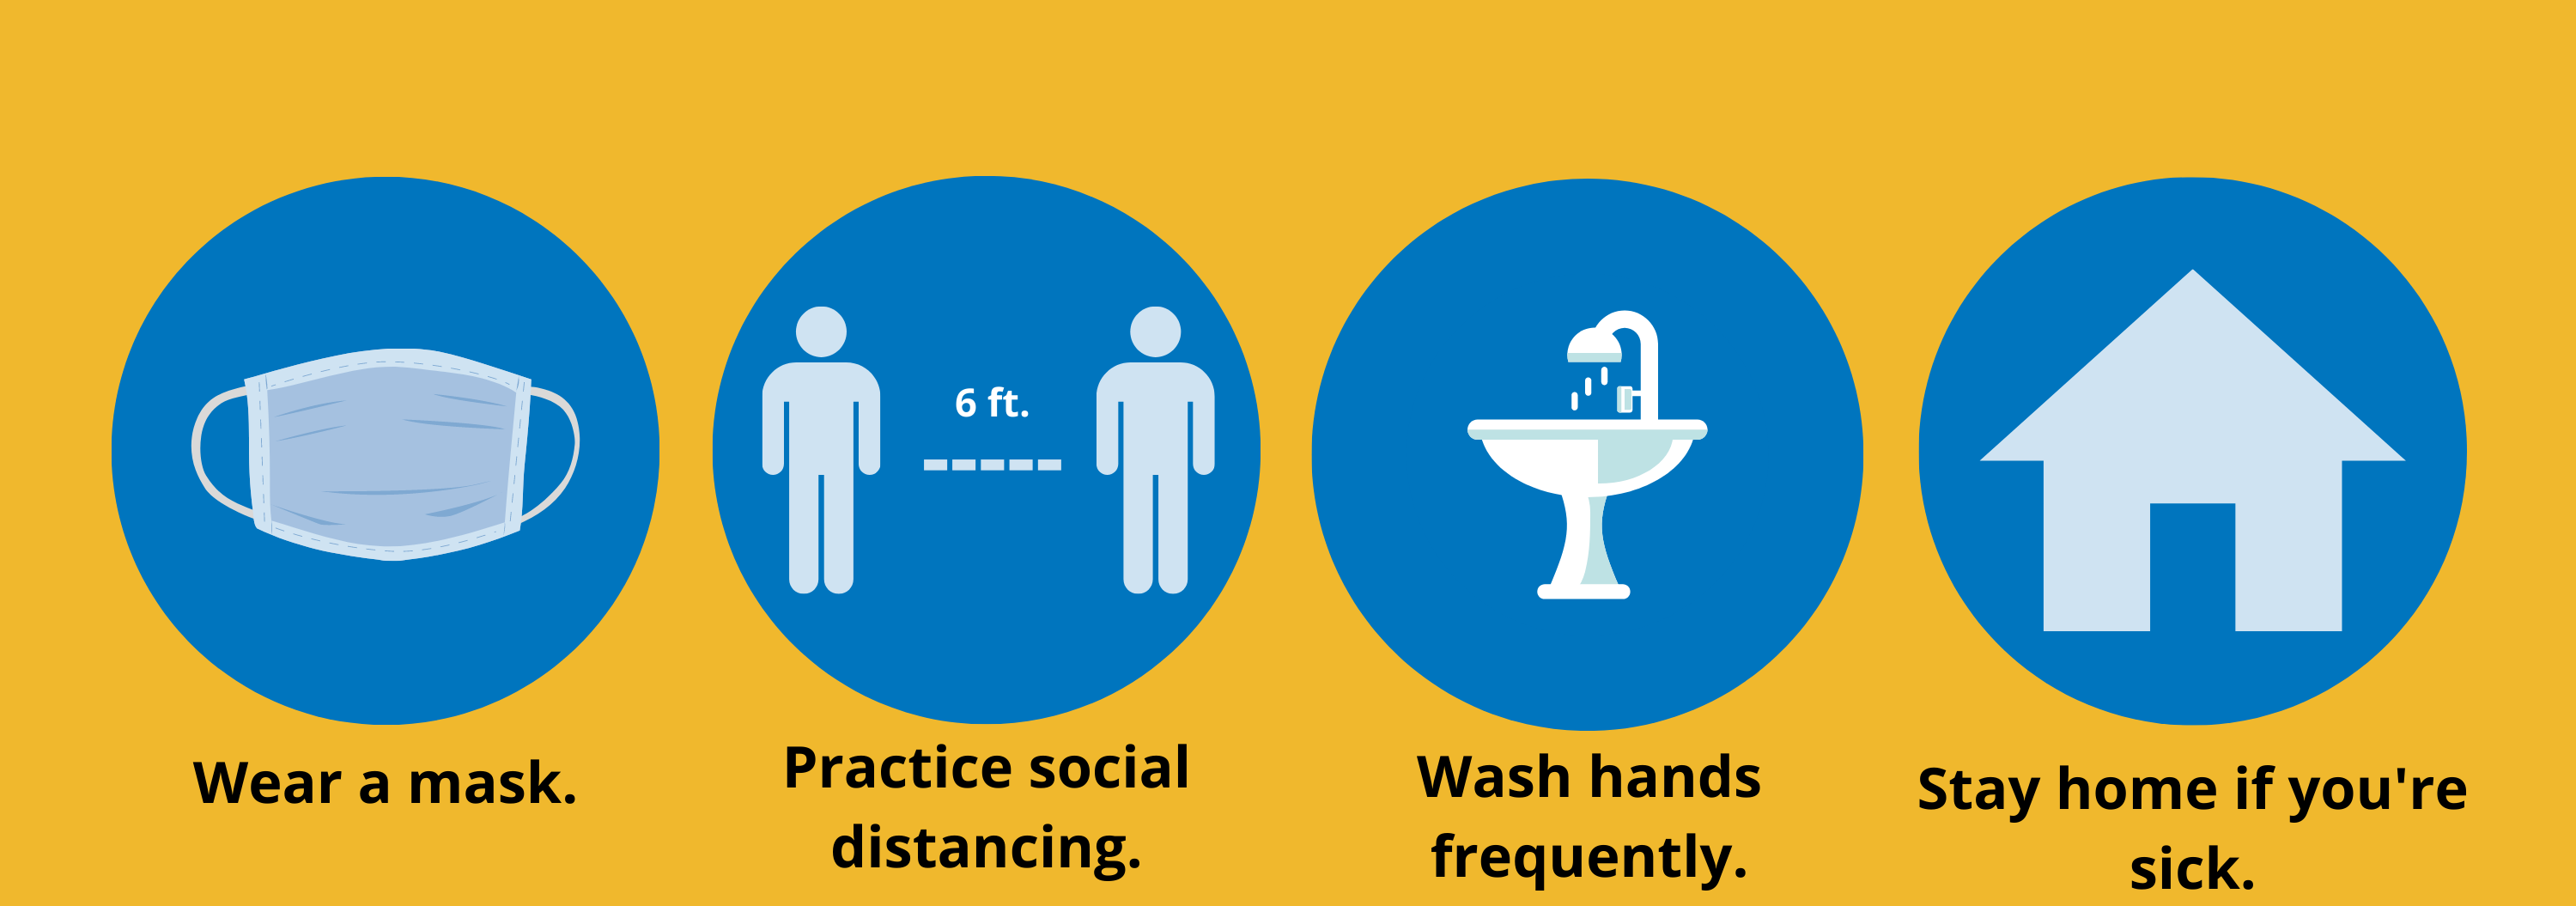 Wear a mask. Practice social distancing. Wash hands frequently. Stay home if you're sick.